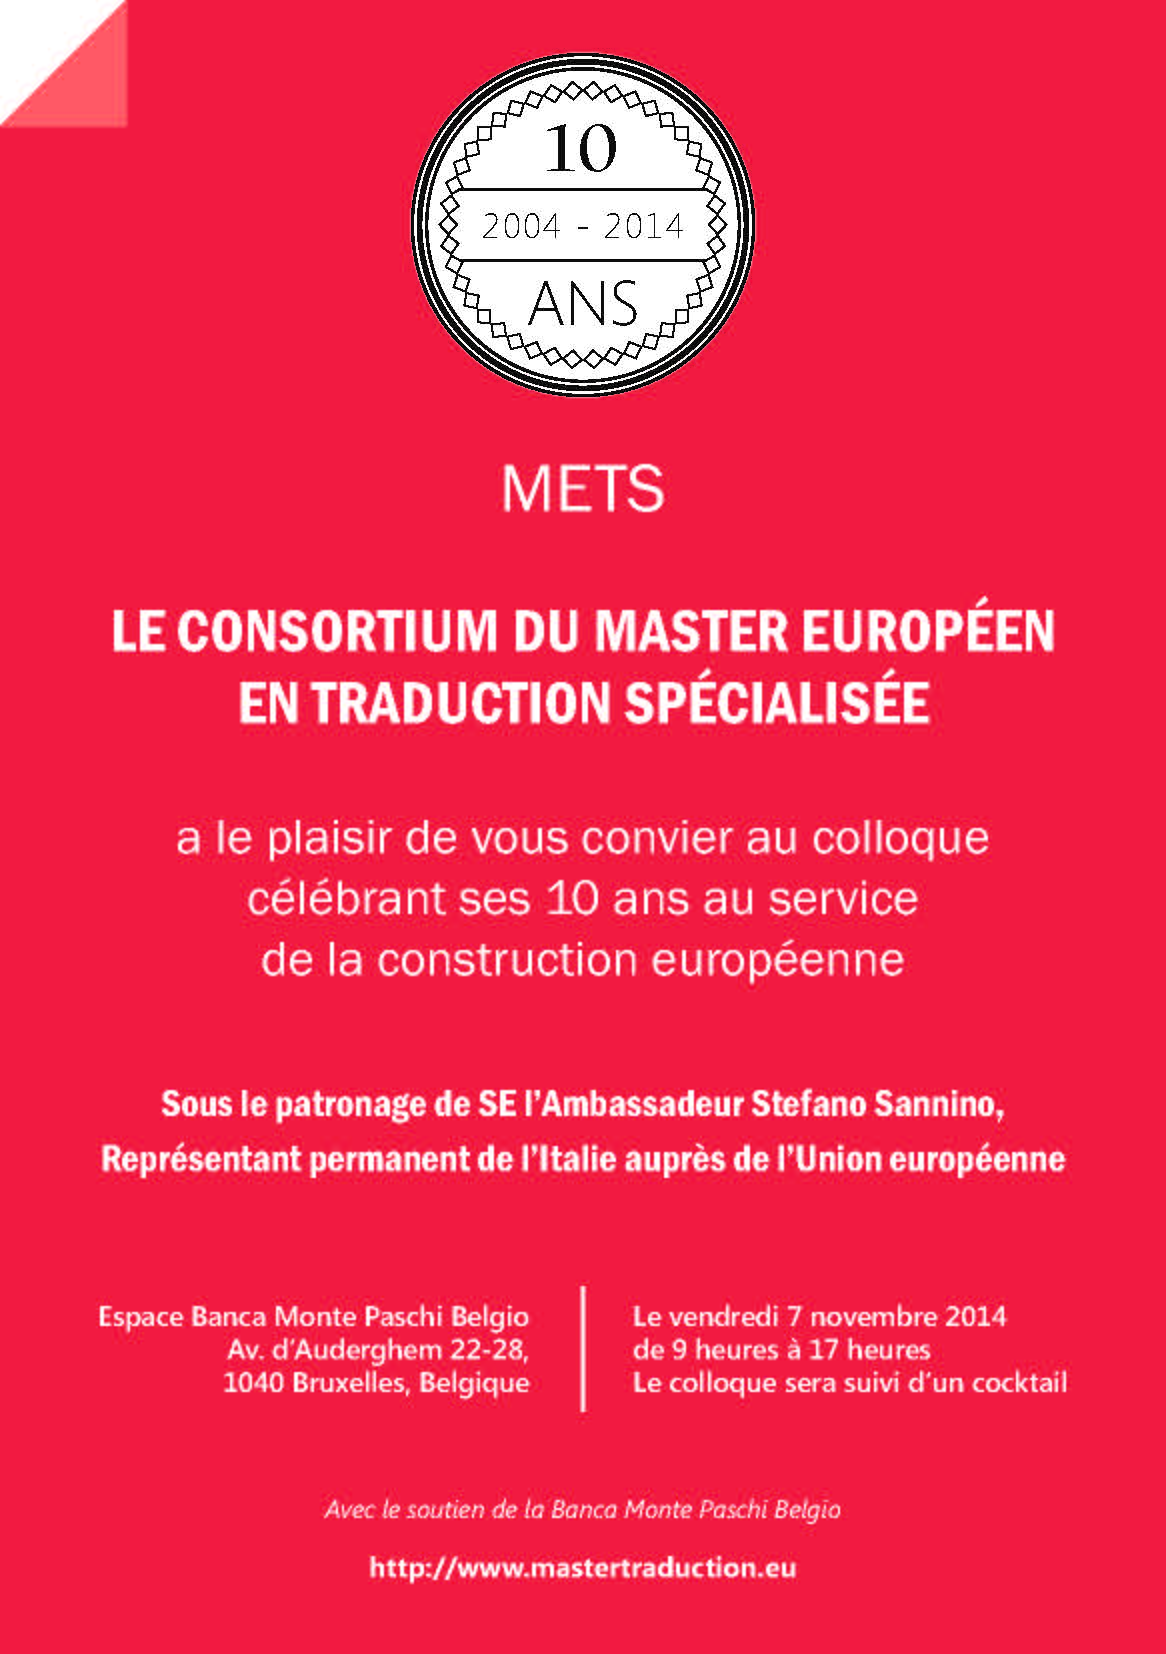 Invitation METS rougeDEF